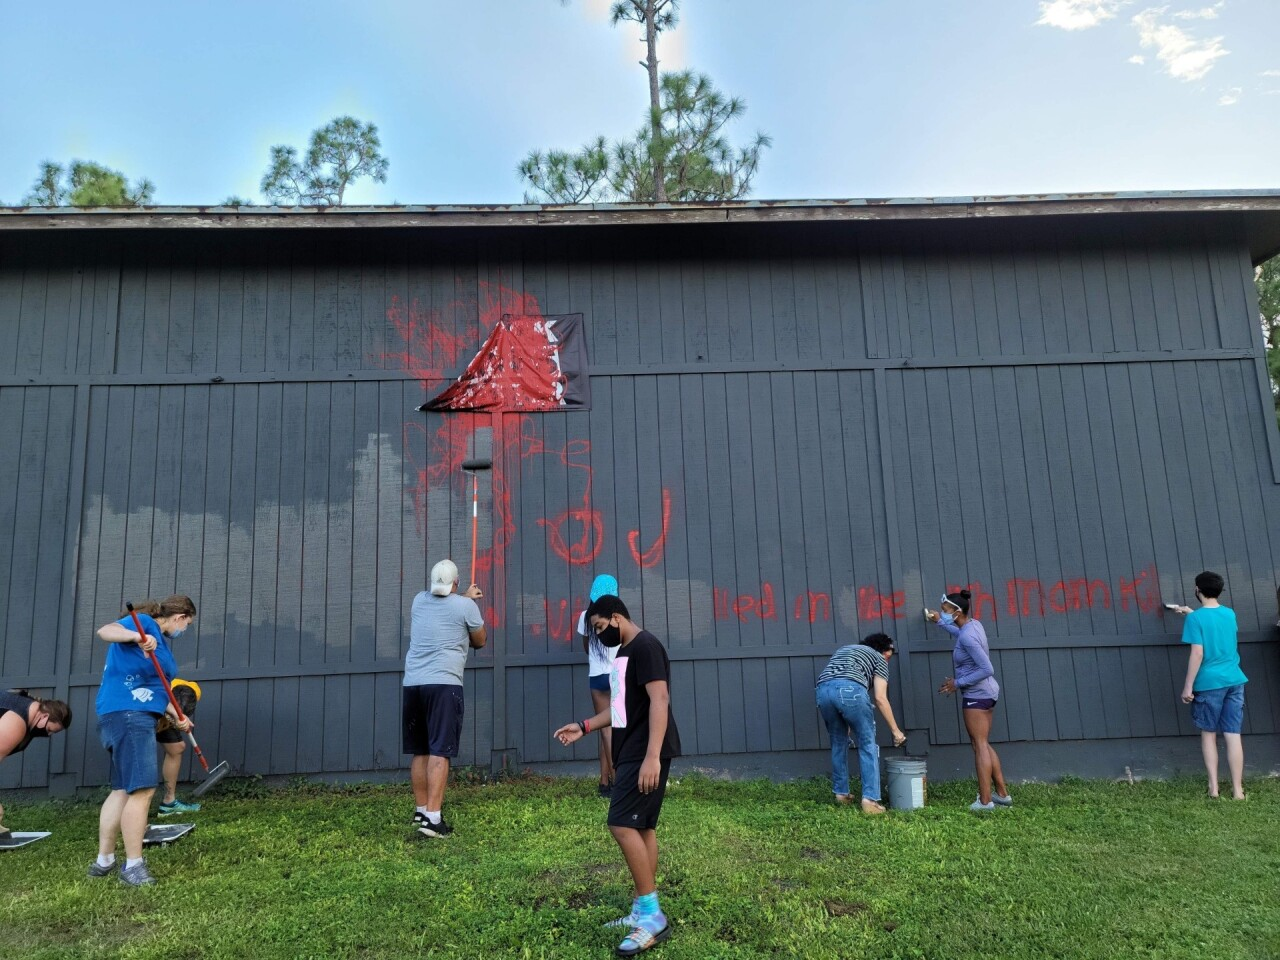 Neighbors clean up after Jupiter Farms property vandalized for sixth time